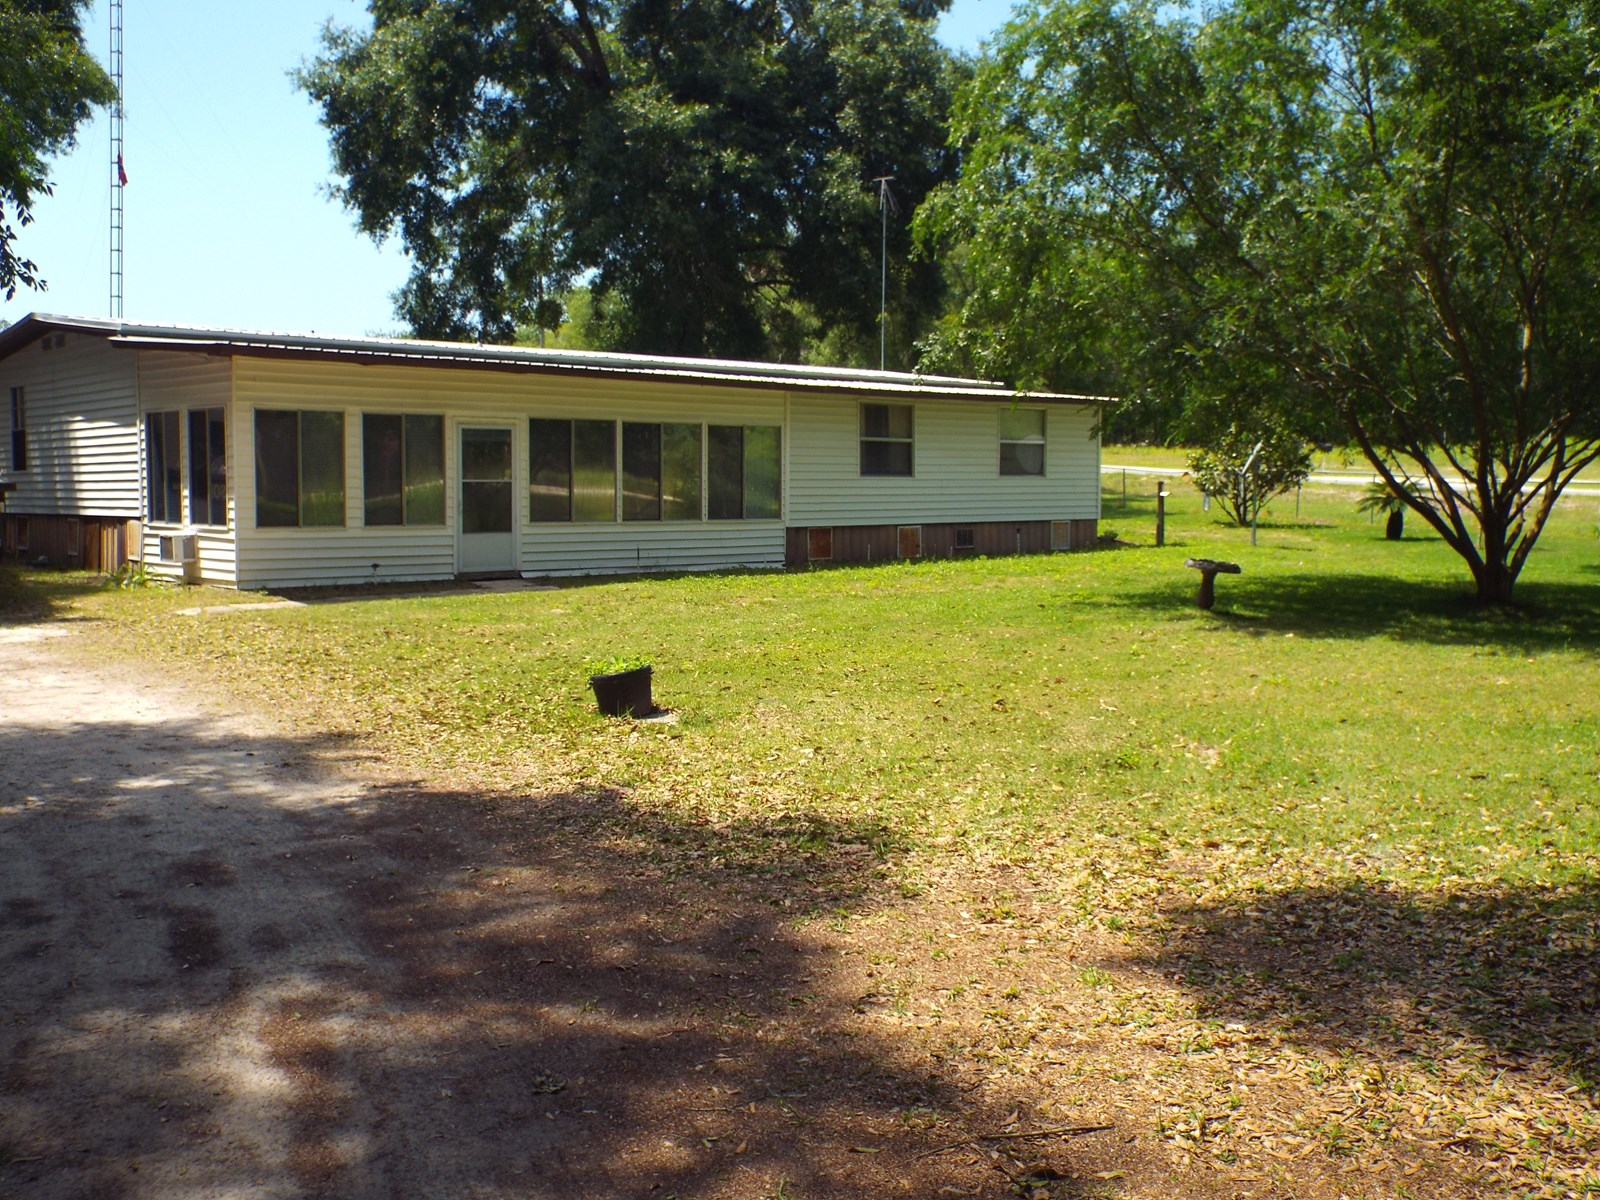 HOME FOR SALE GILCHRIST COUNTY FLORIDA WITH ACREAGE